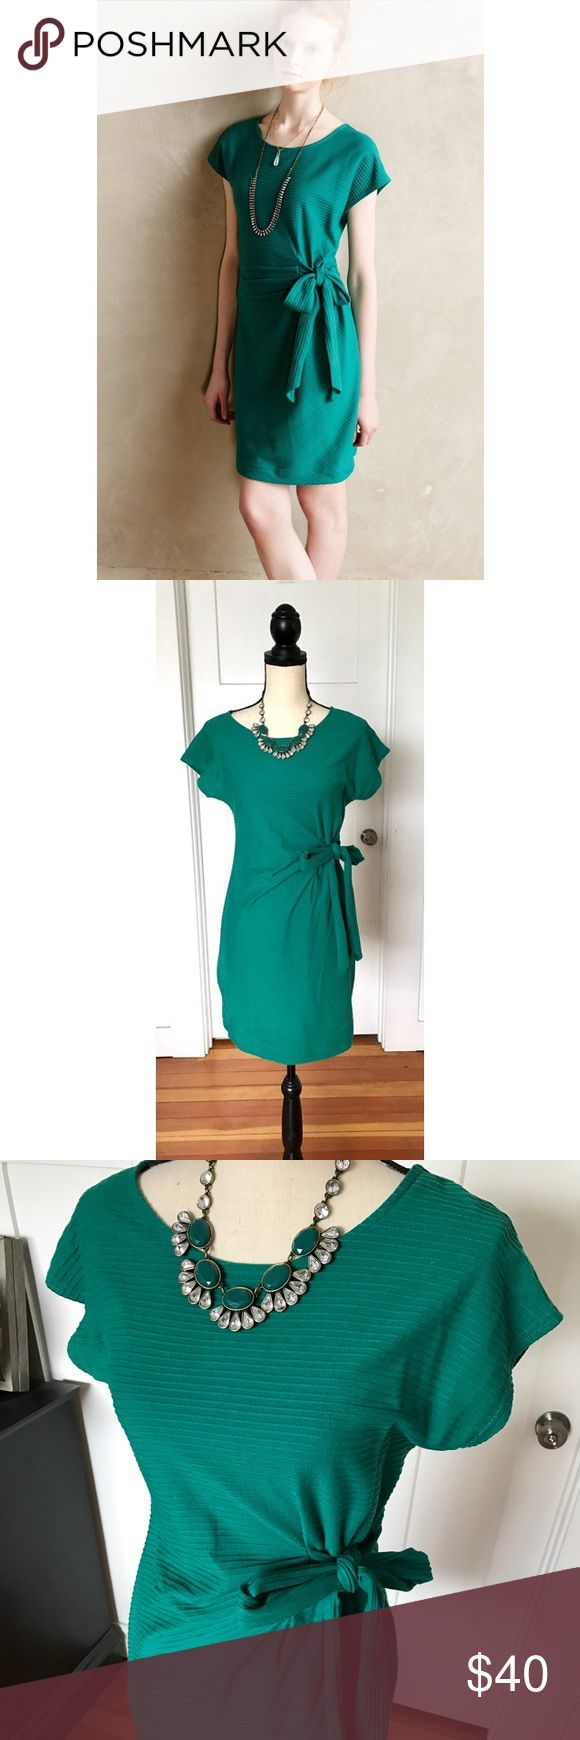 🎉HP🎉 Anthropologie Side Tie Dress Green/teal short sleeve dress with side tie. Very flattering! Only worn once! From Anthropologie, Saturday Sunday brand. Anthropologie Dresses Mini